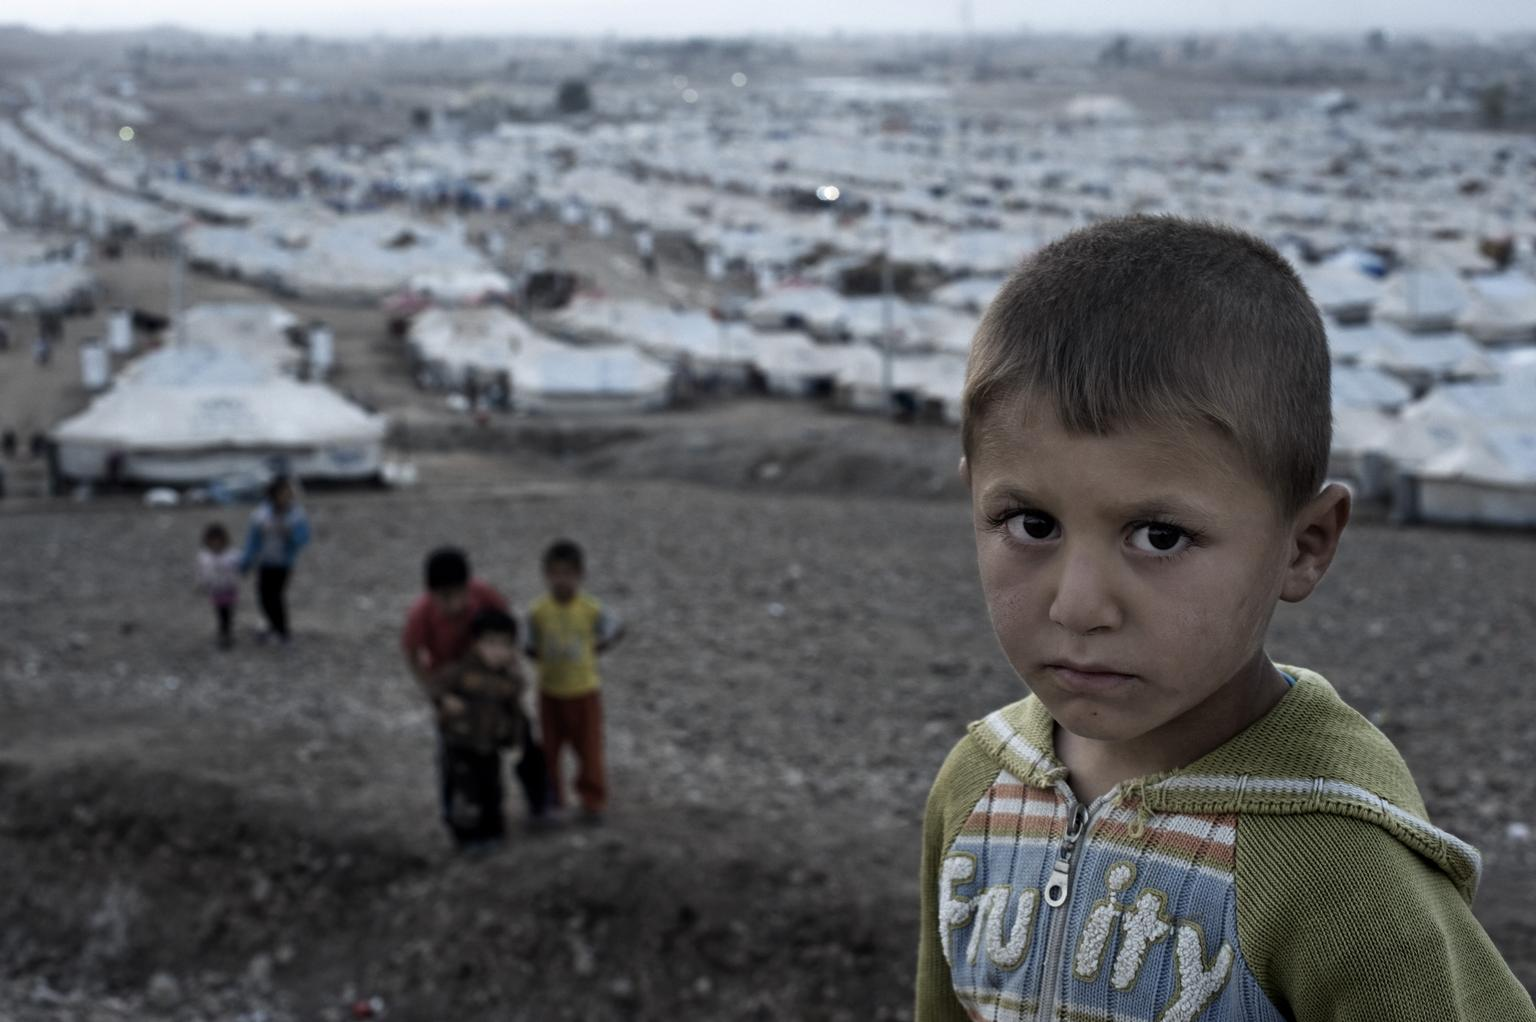 Over one million Syrian children are living as refugees.